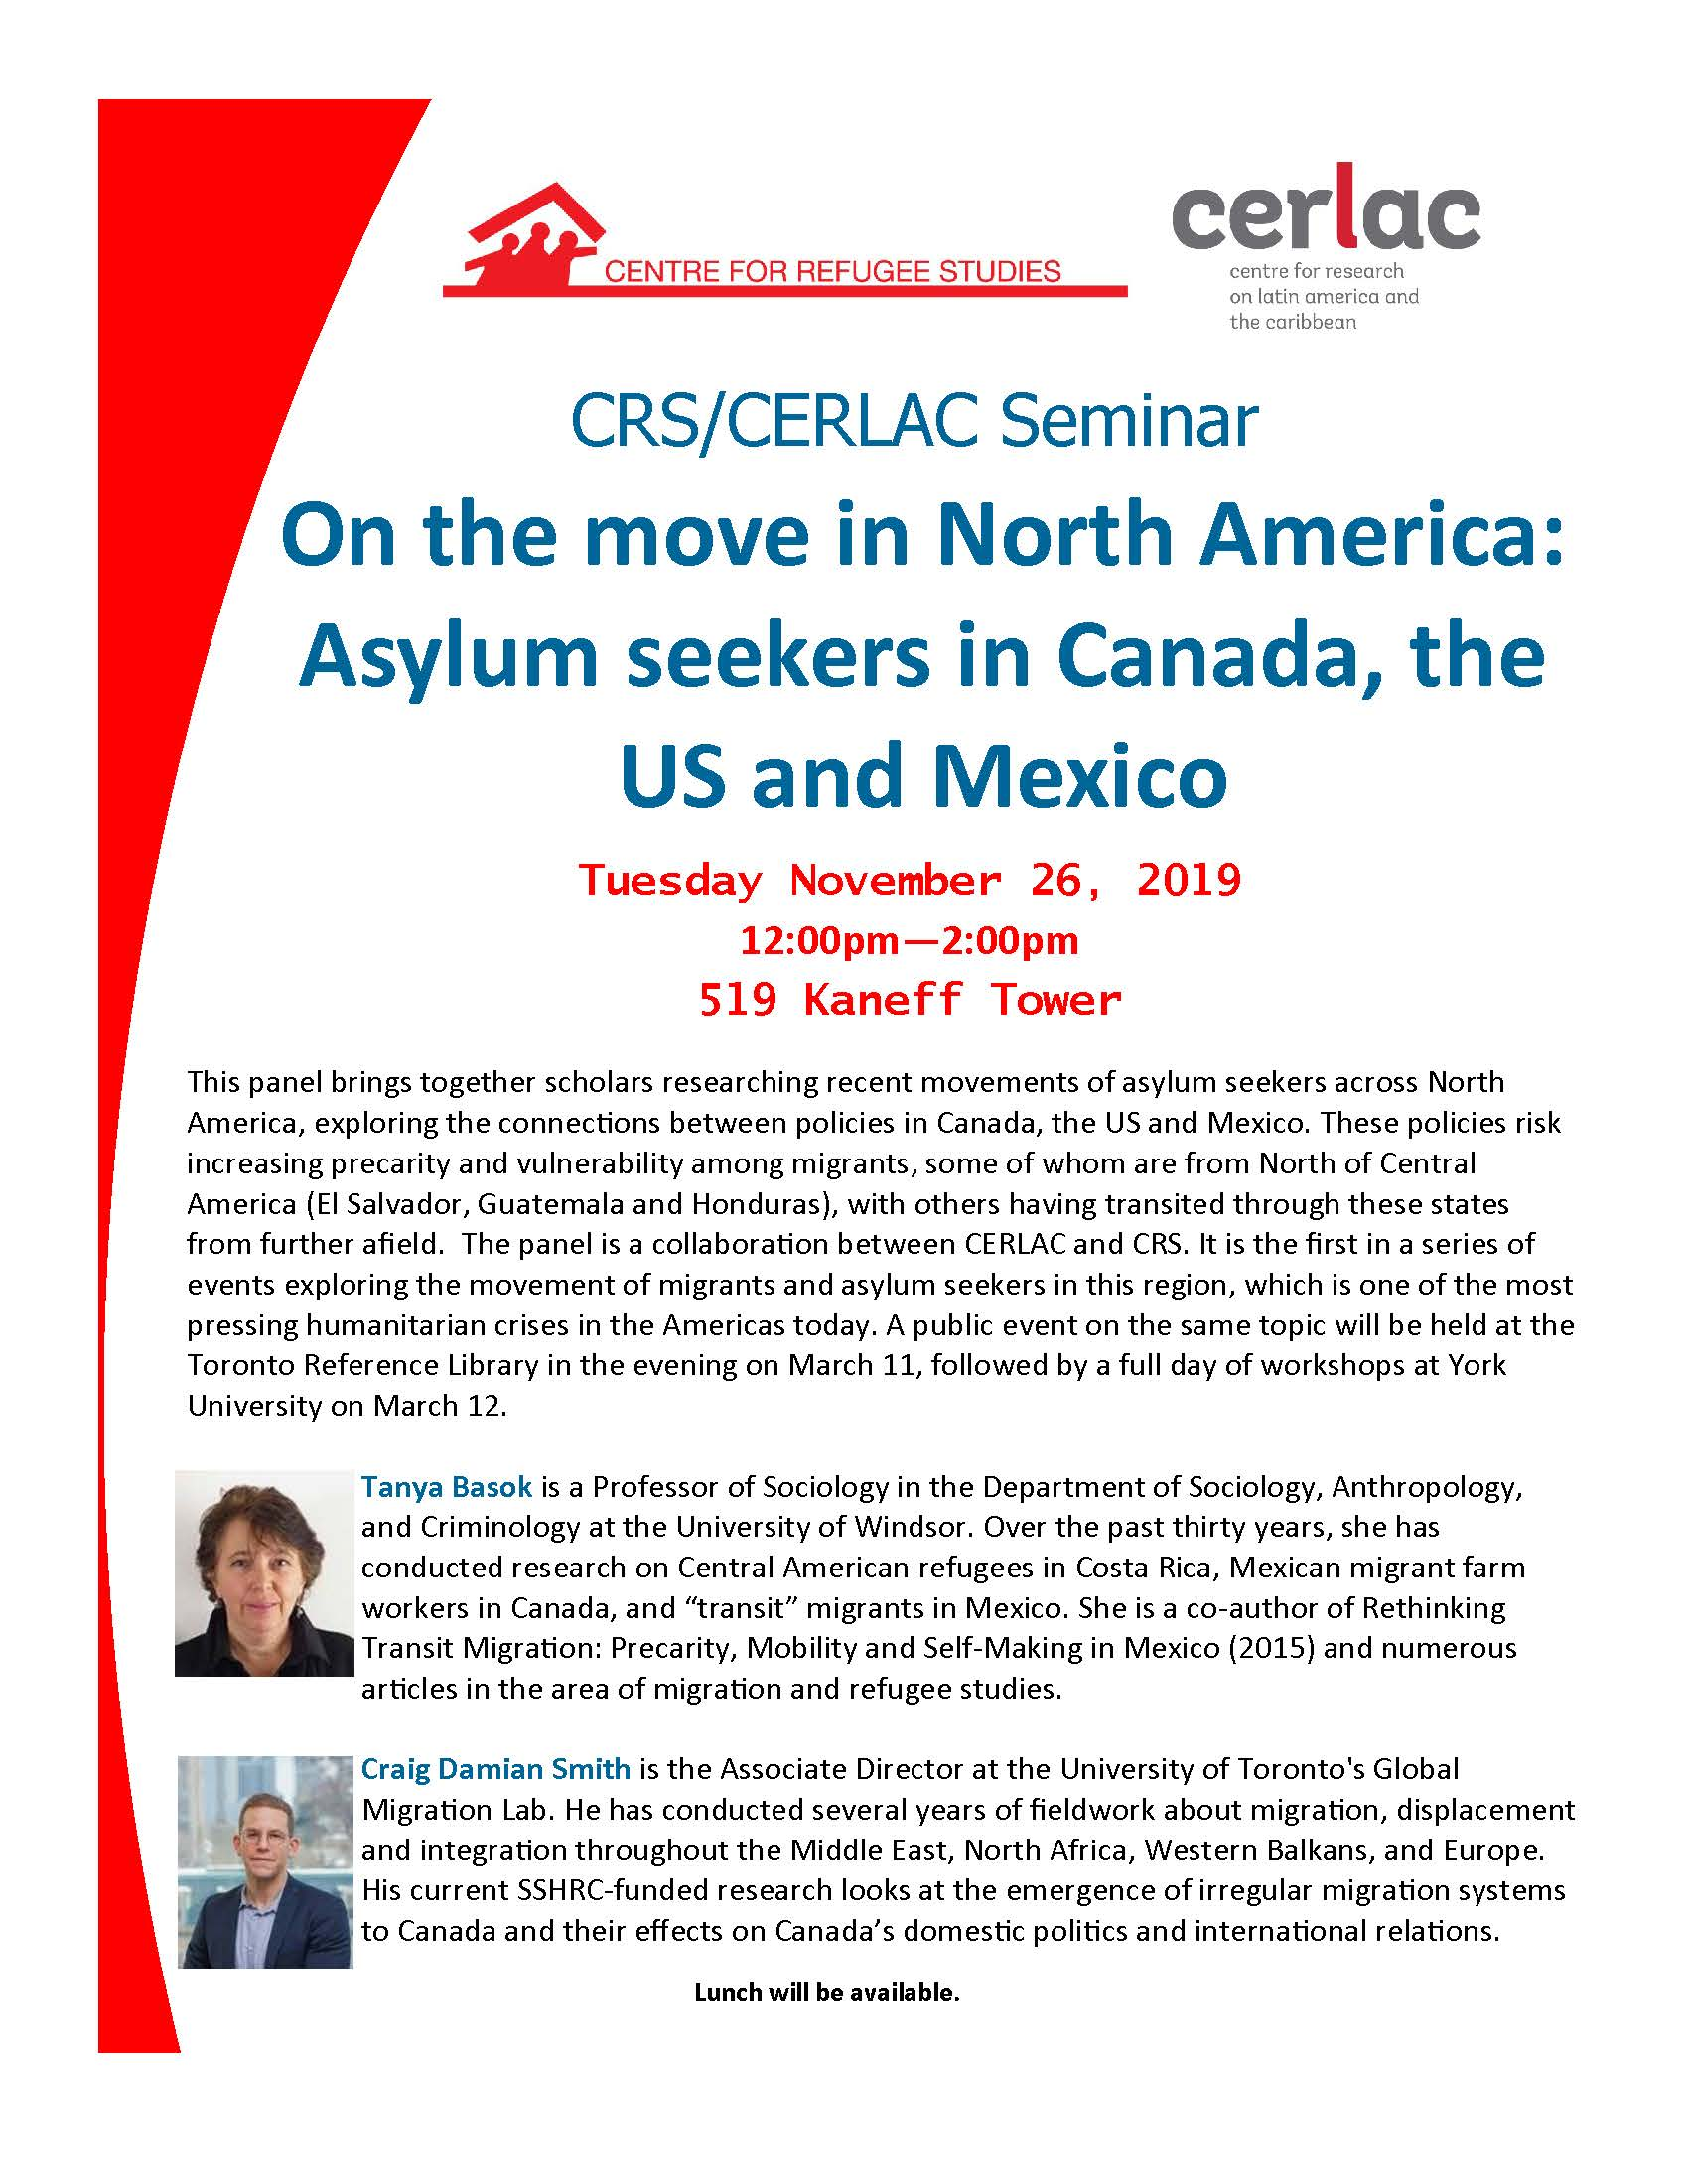 CRS/CERLAC Seminar: On the move in North America: Asylum seekers in Canada, the US and Mexico @ Kaneff Tower 519